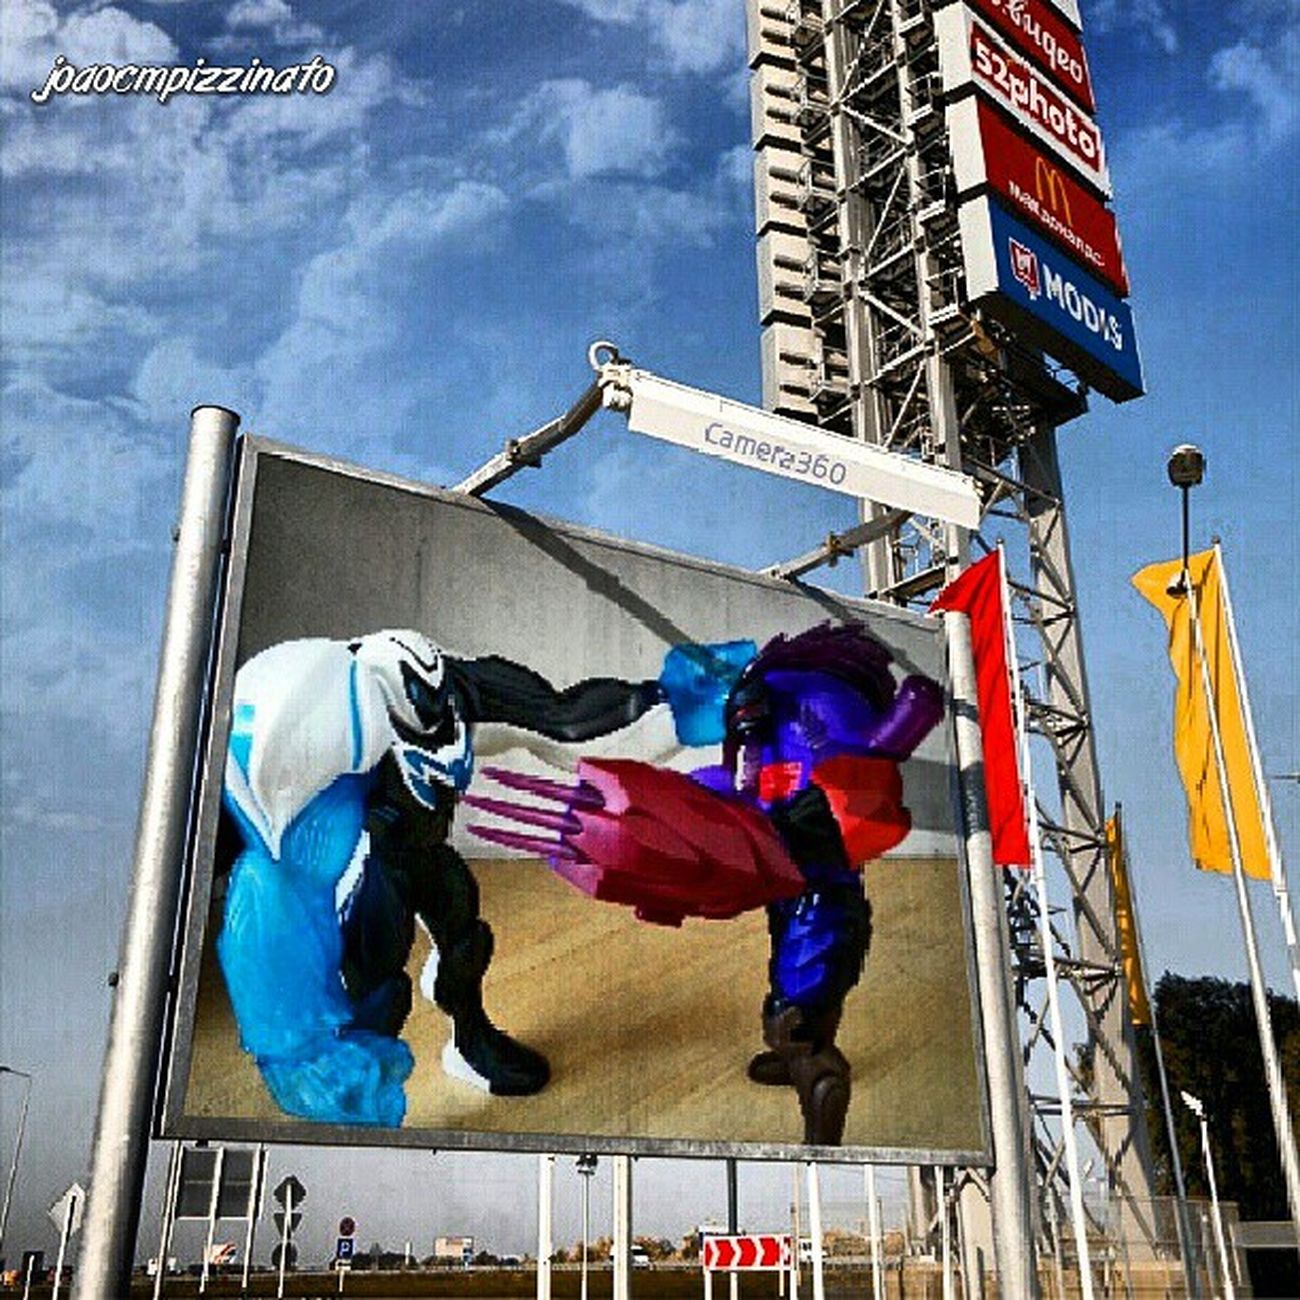 Max Steel vs Tozxon. MaxSteel Tozxon Toy Colors photography effect Camera360 city zonasul saopaulo brasil